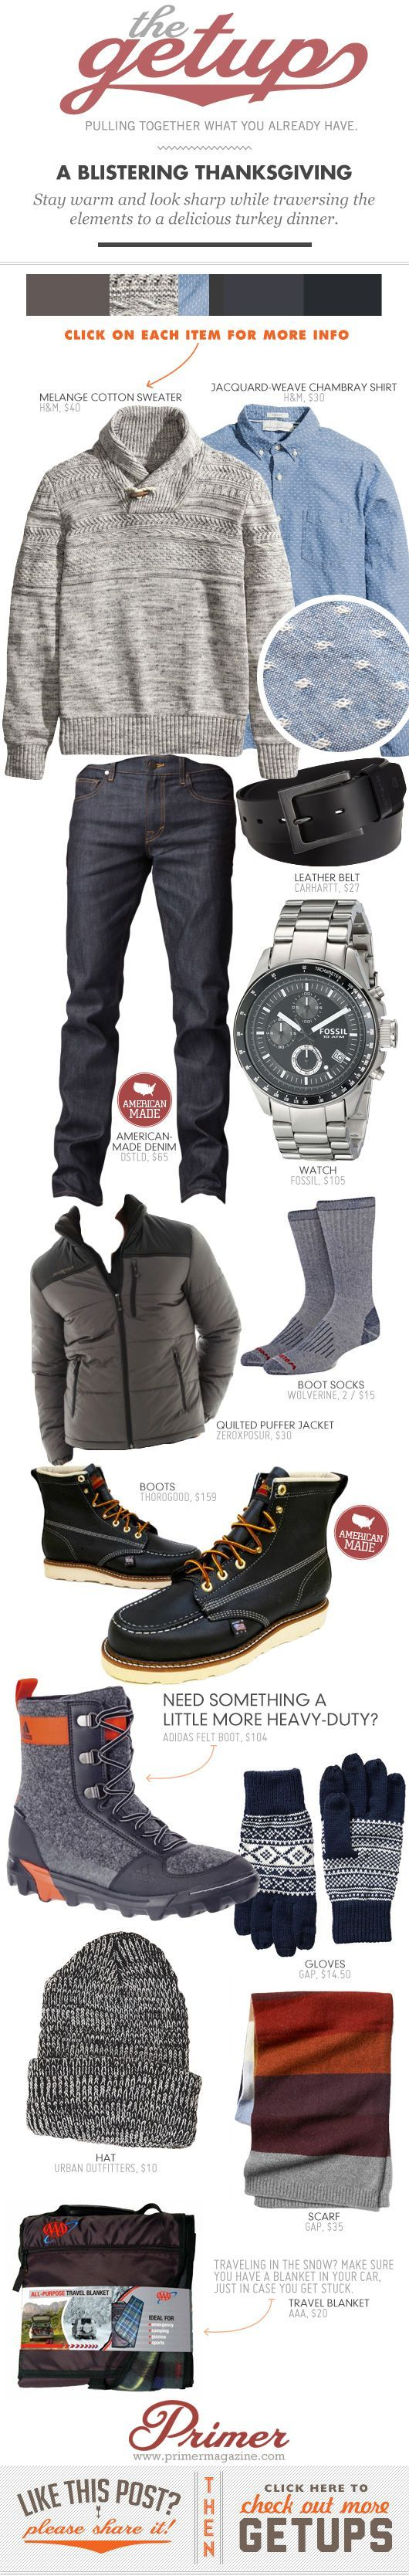 The Getup: A Blistering Thanksgiving Stay warm and look sharp while traversing the elements to a delicious turkey dinner.